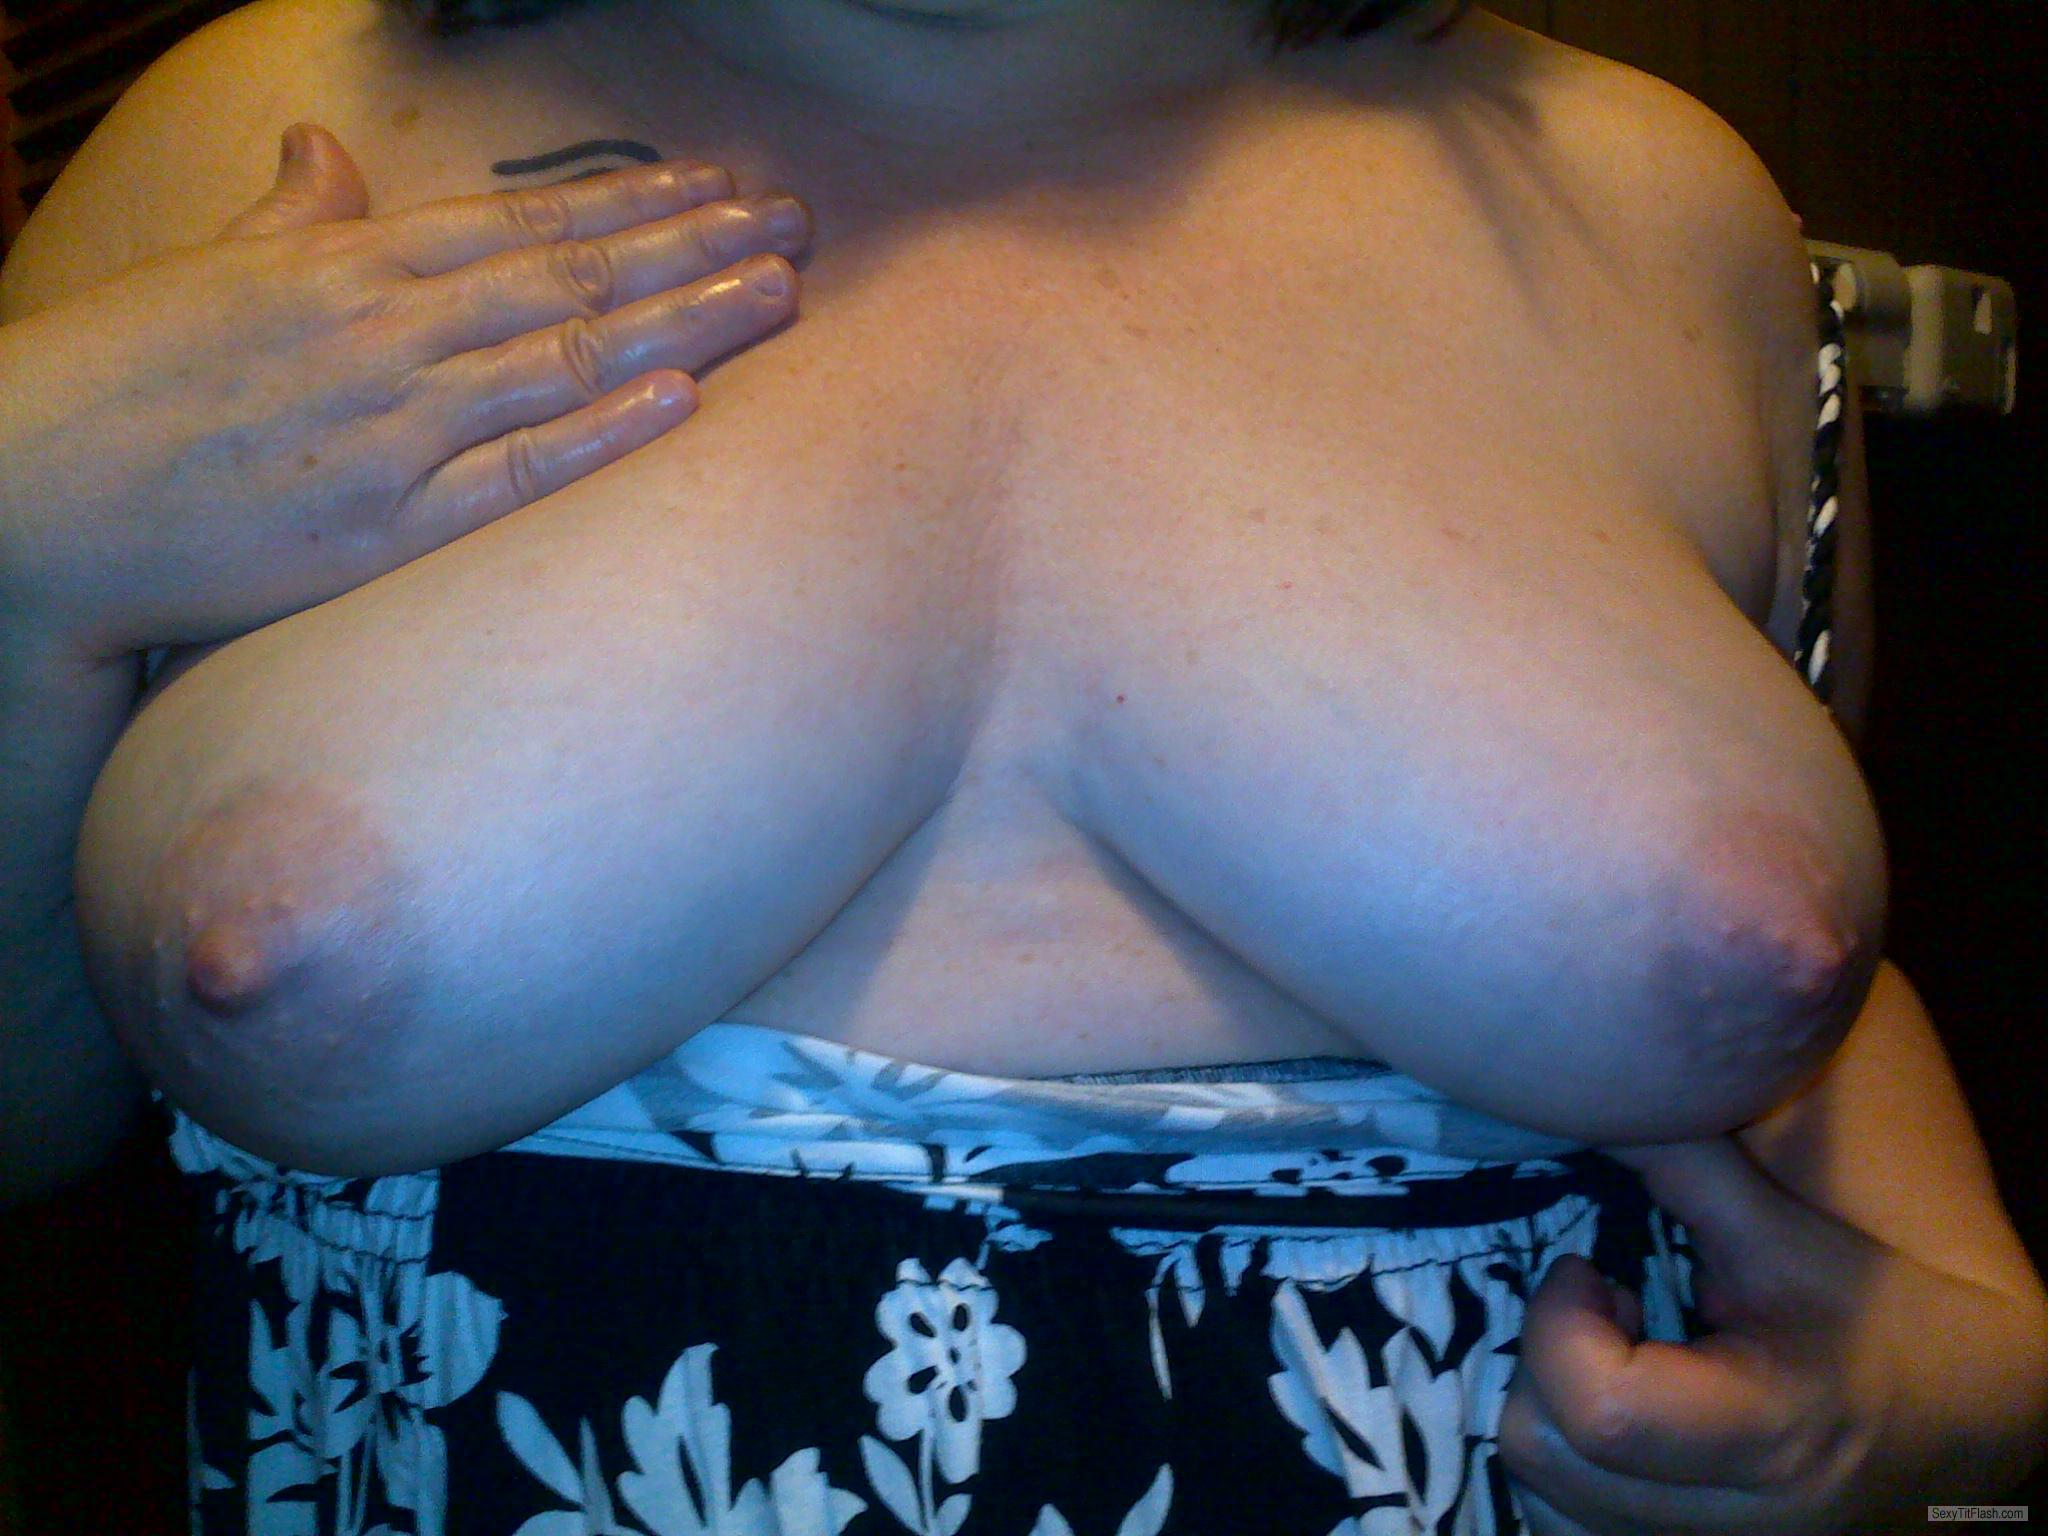 Tit Flash: My Very Big Tits - Jeanie In A Bottle from United States